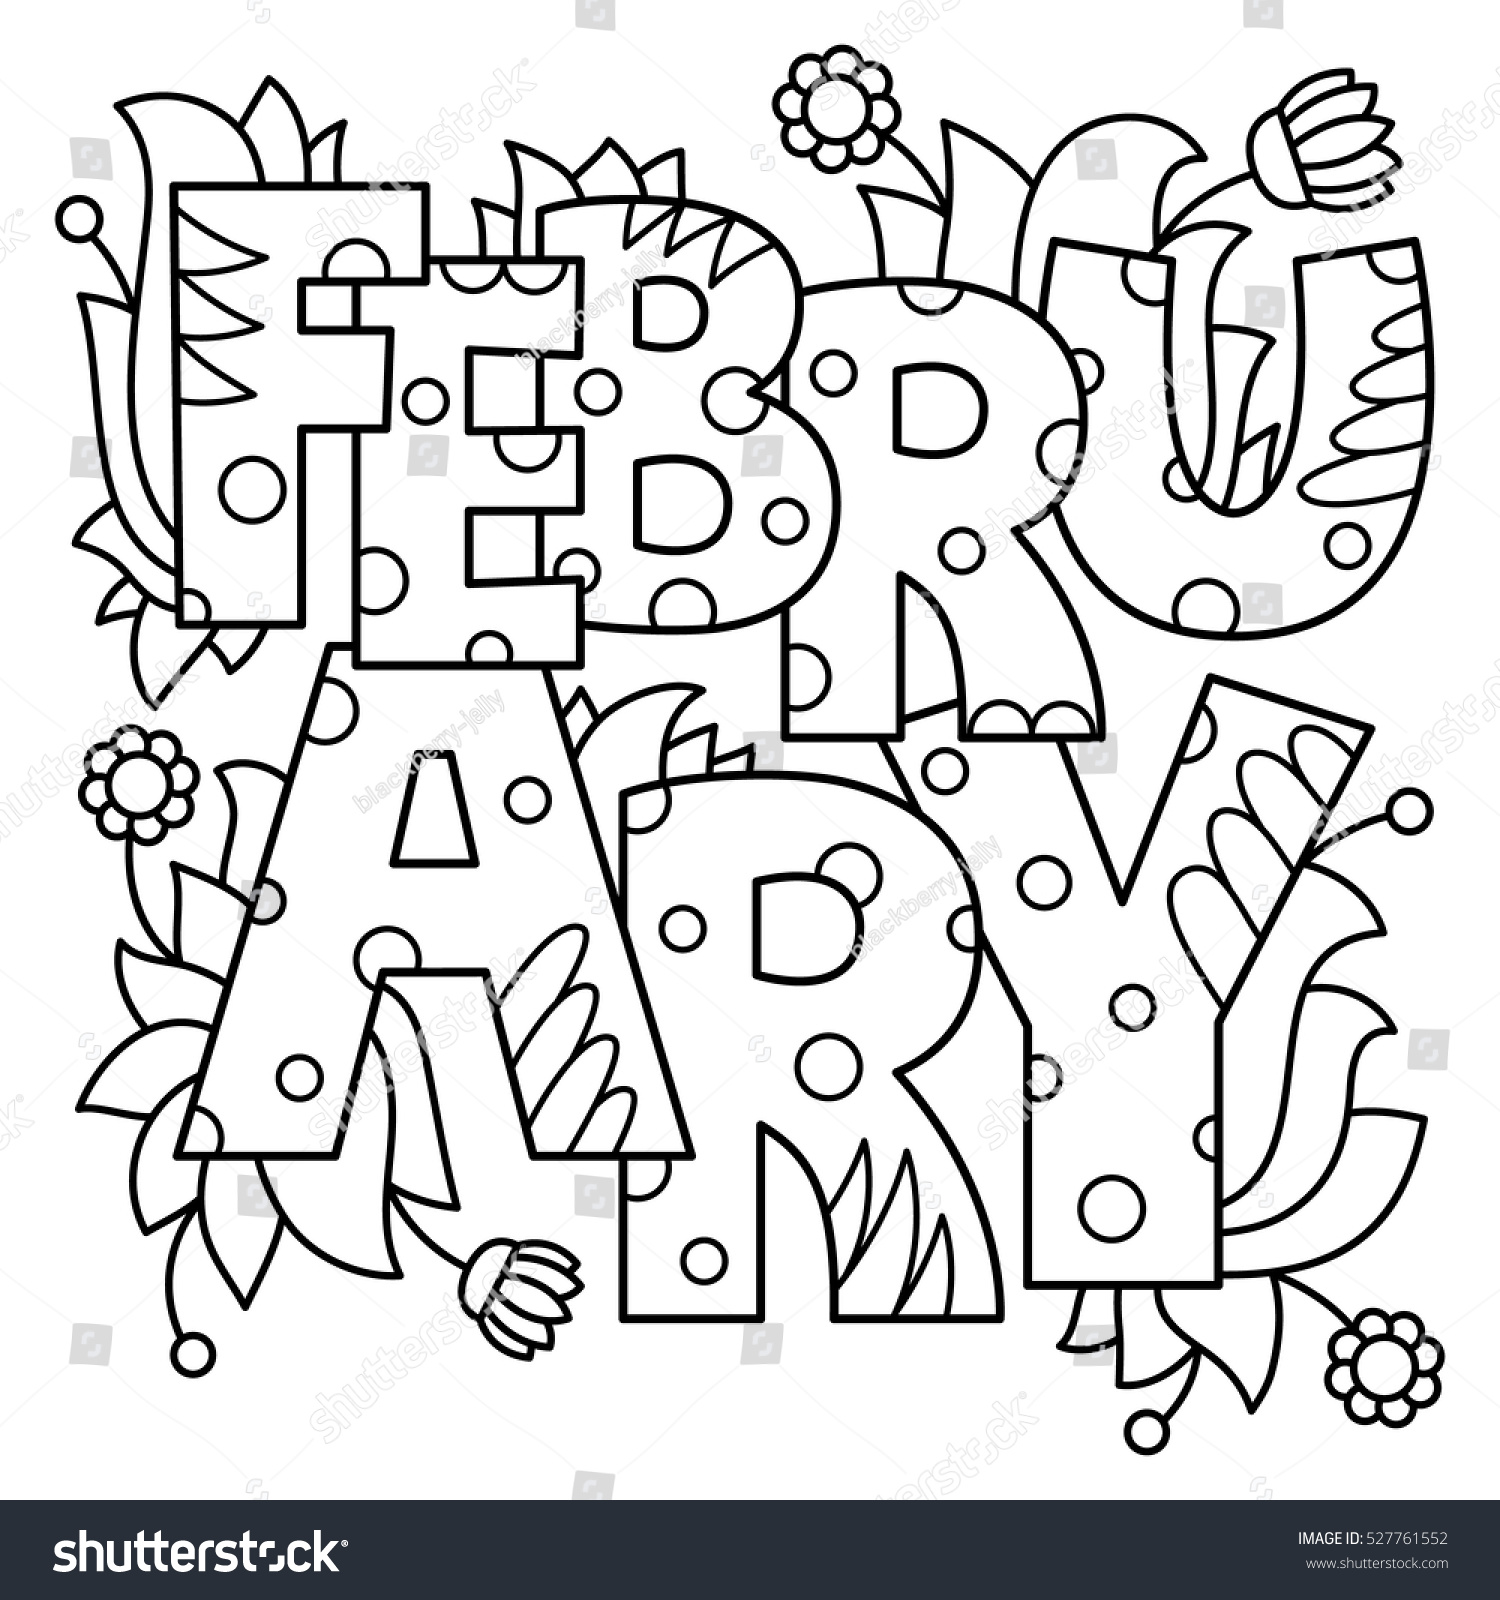 Black White Vector Illustration February Coloring Stock Vector ...